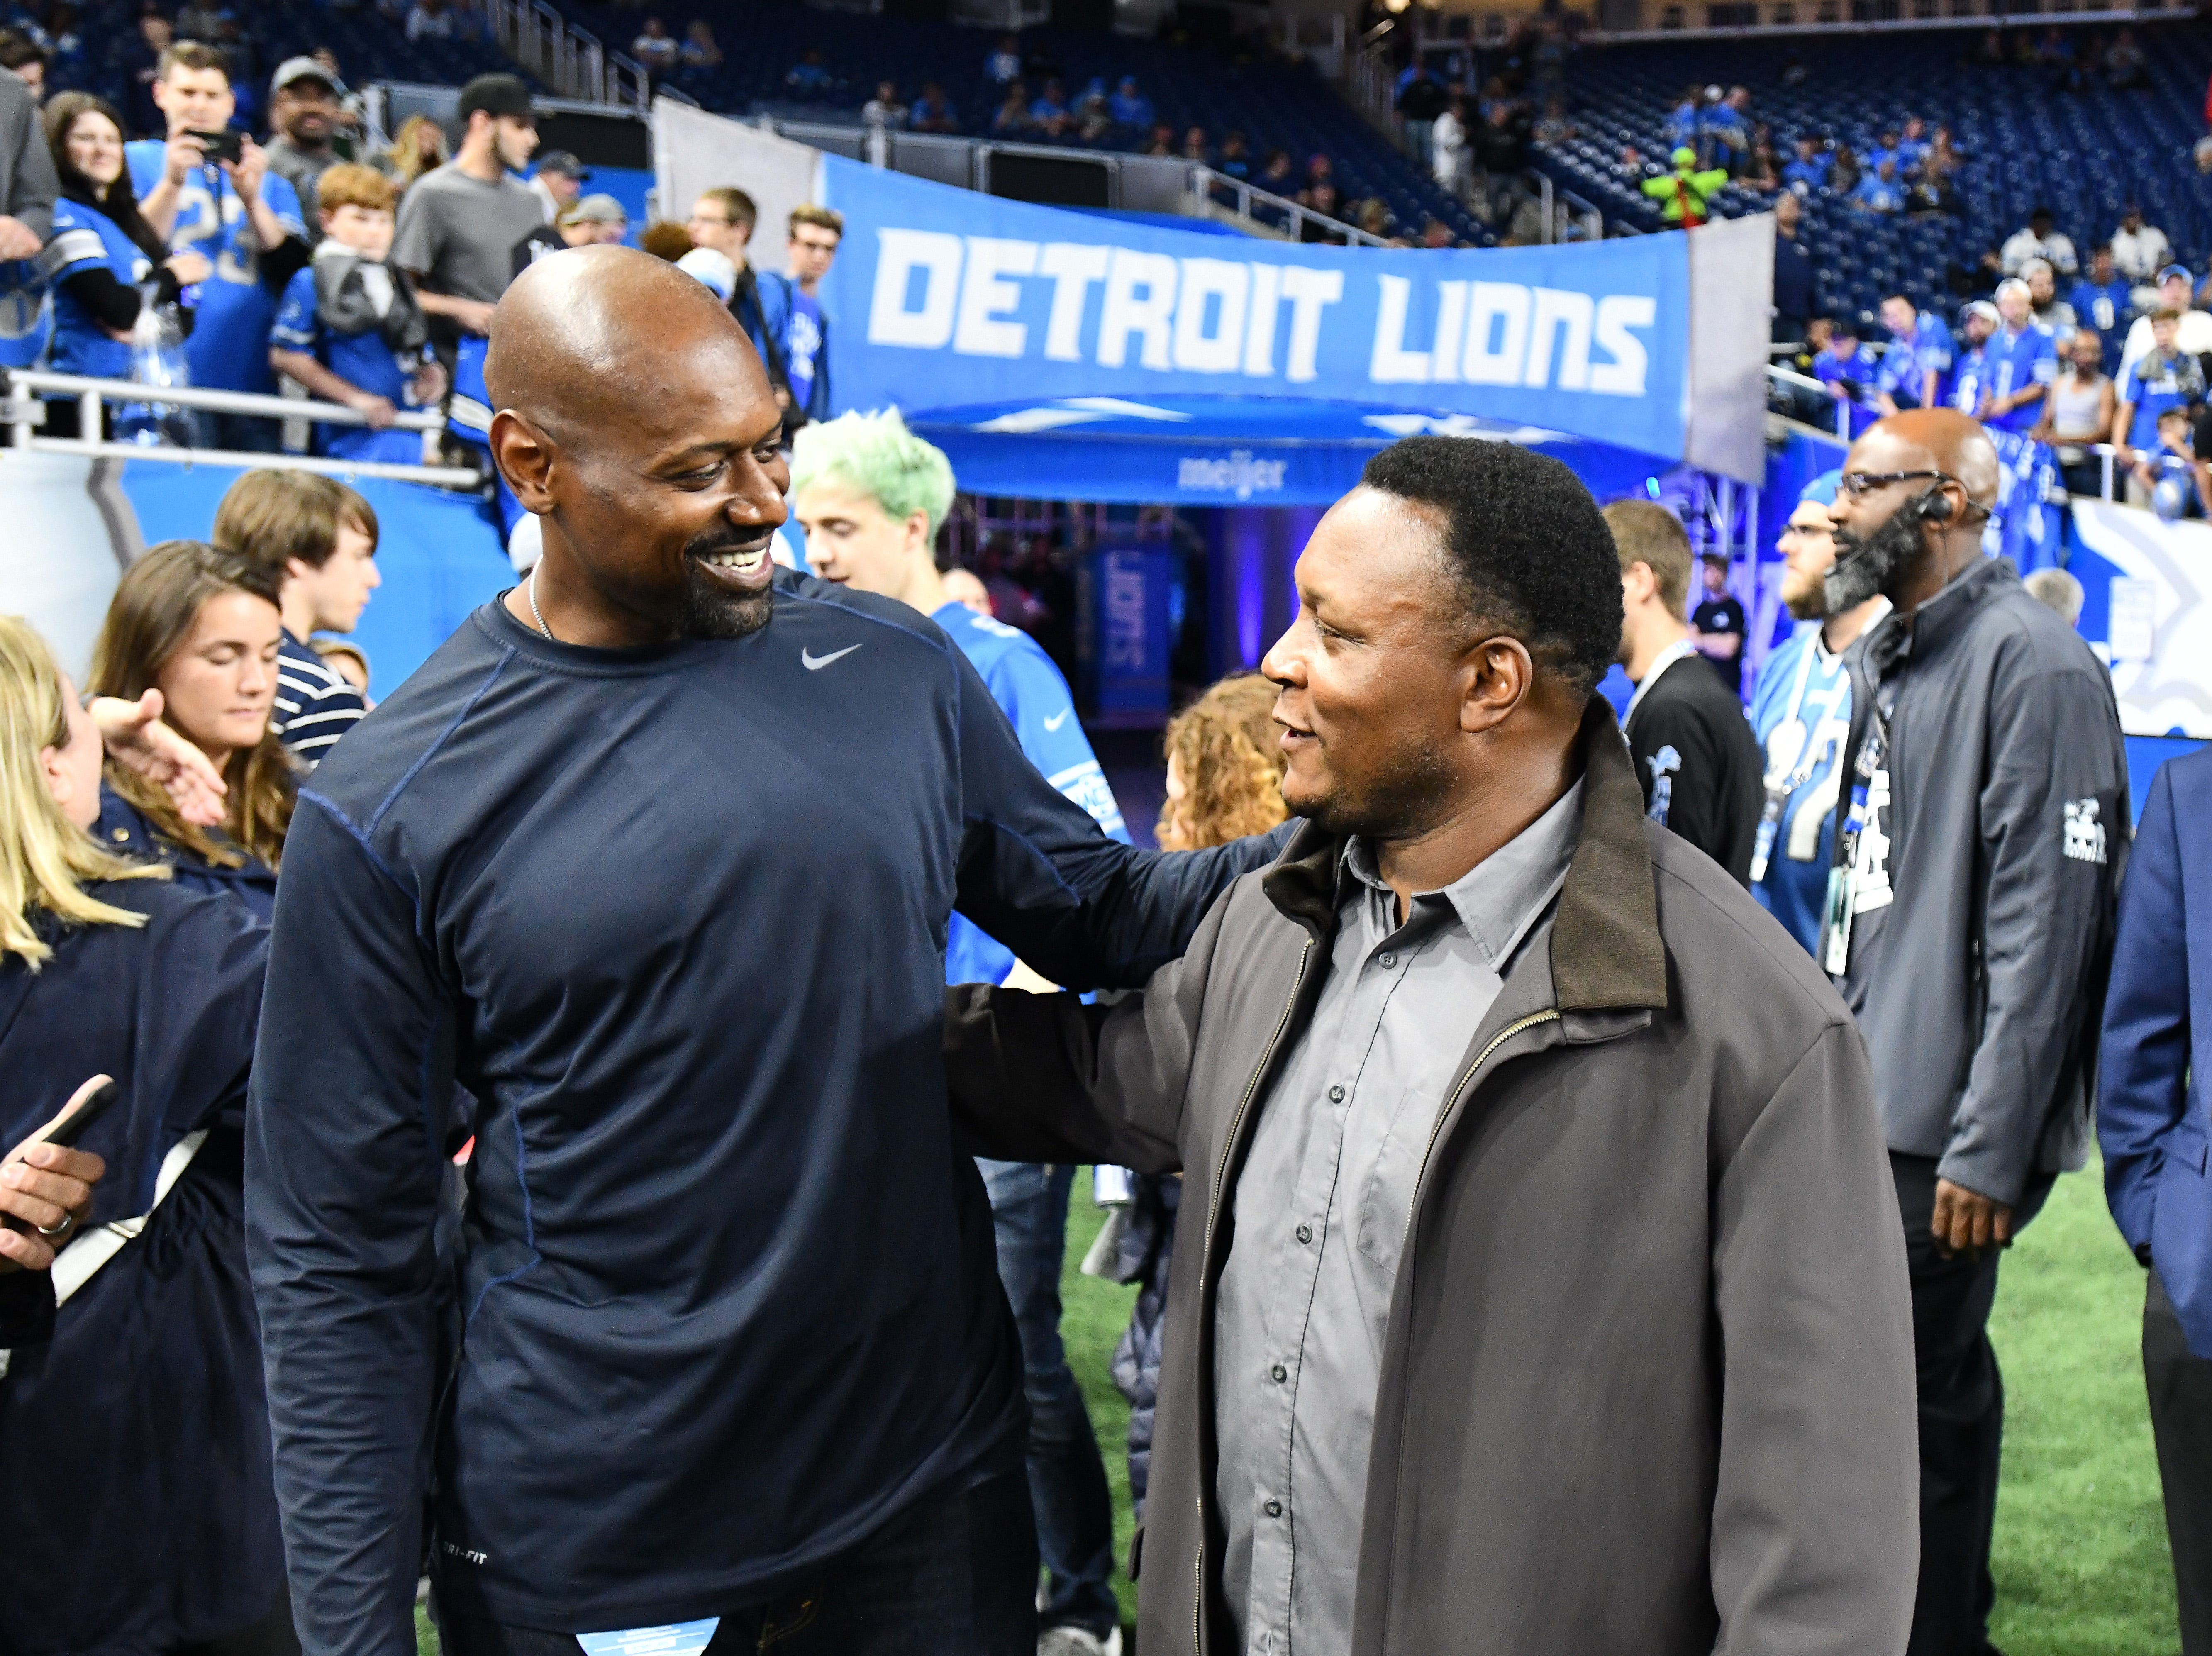 Former Lions Herman Moore and Barry Sanders chat on the field before the game.